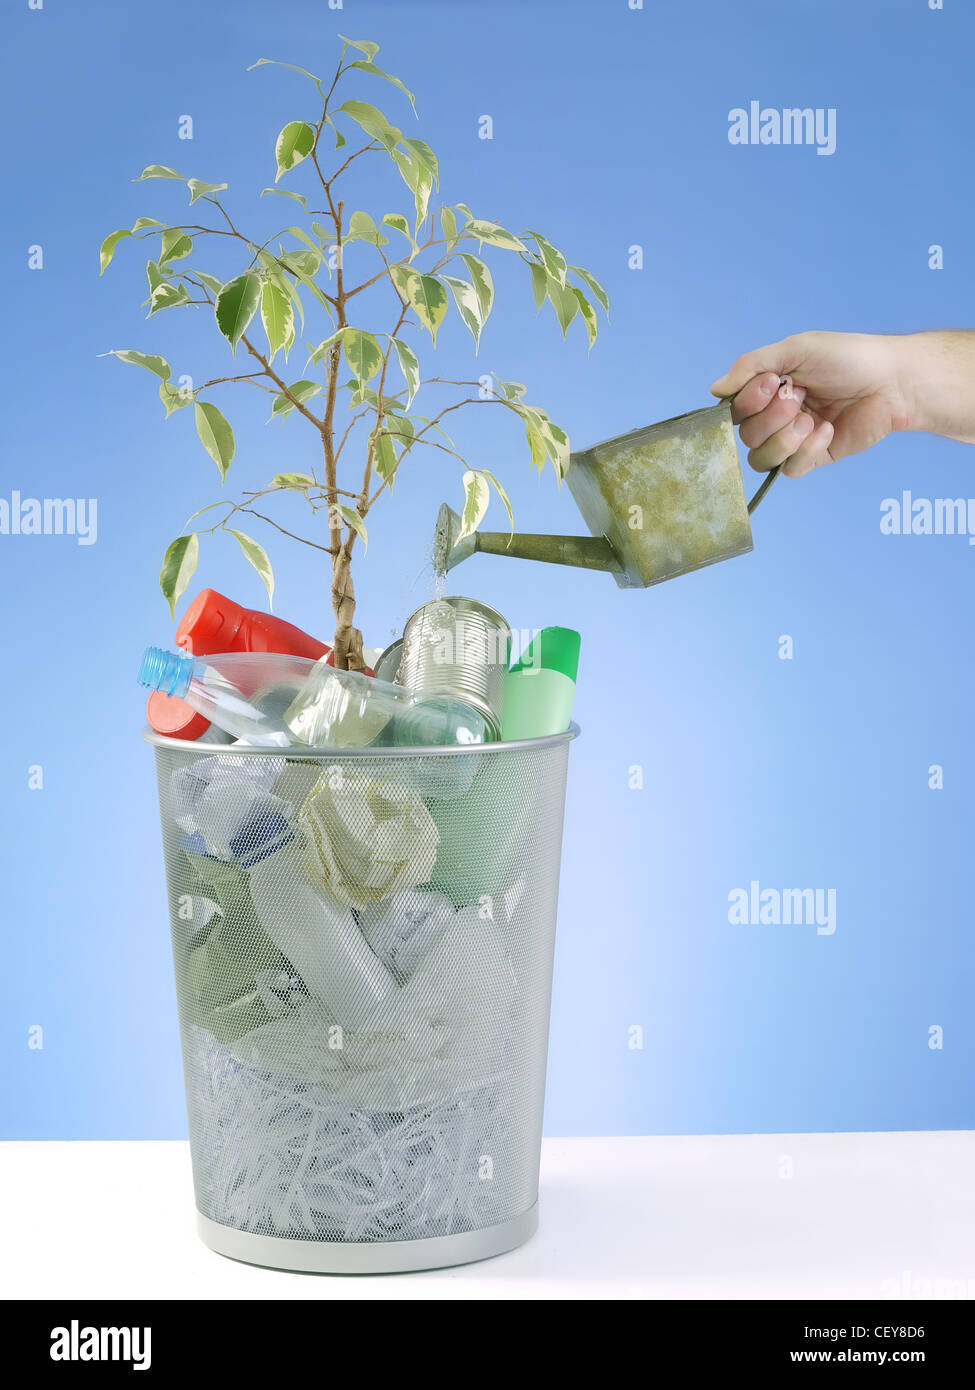 Plantlet growing in trash bin full of domestic garbage being watered with water can over blue background - Stock Image